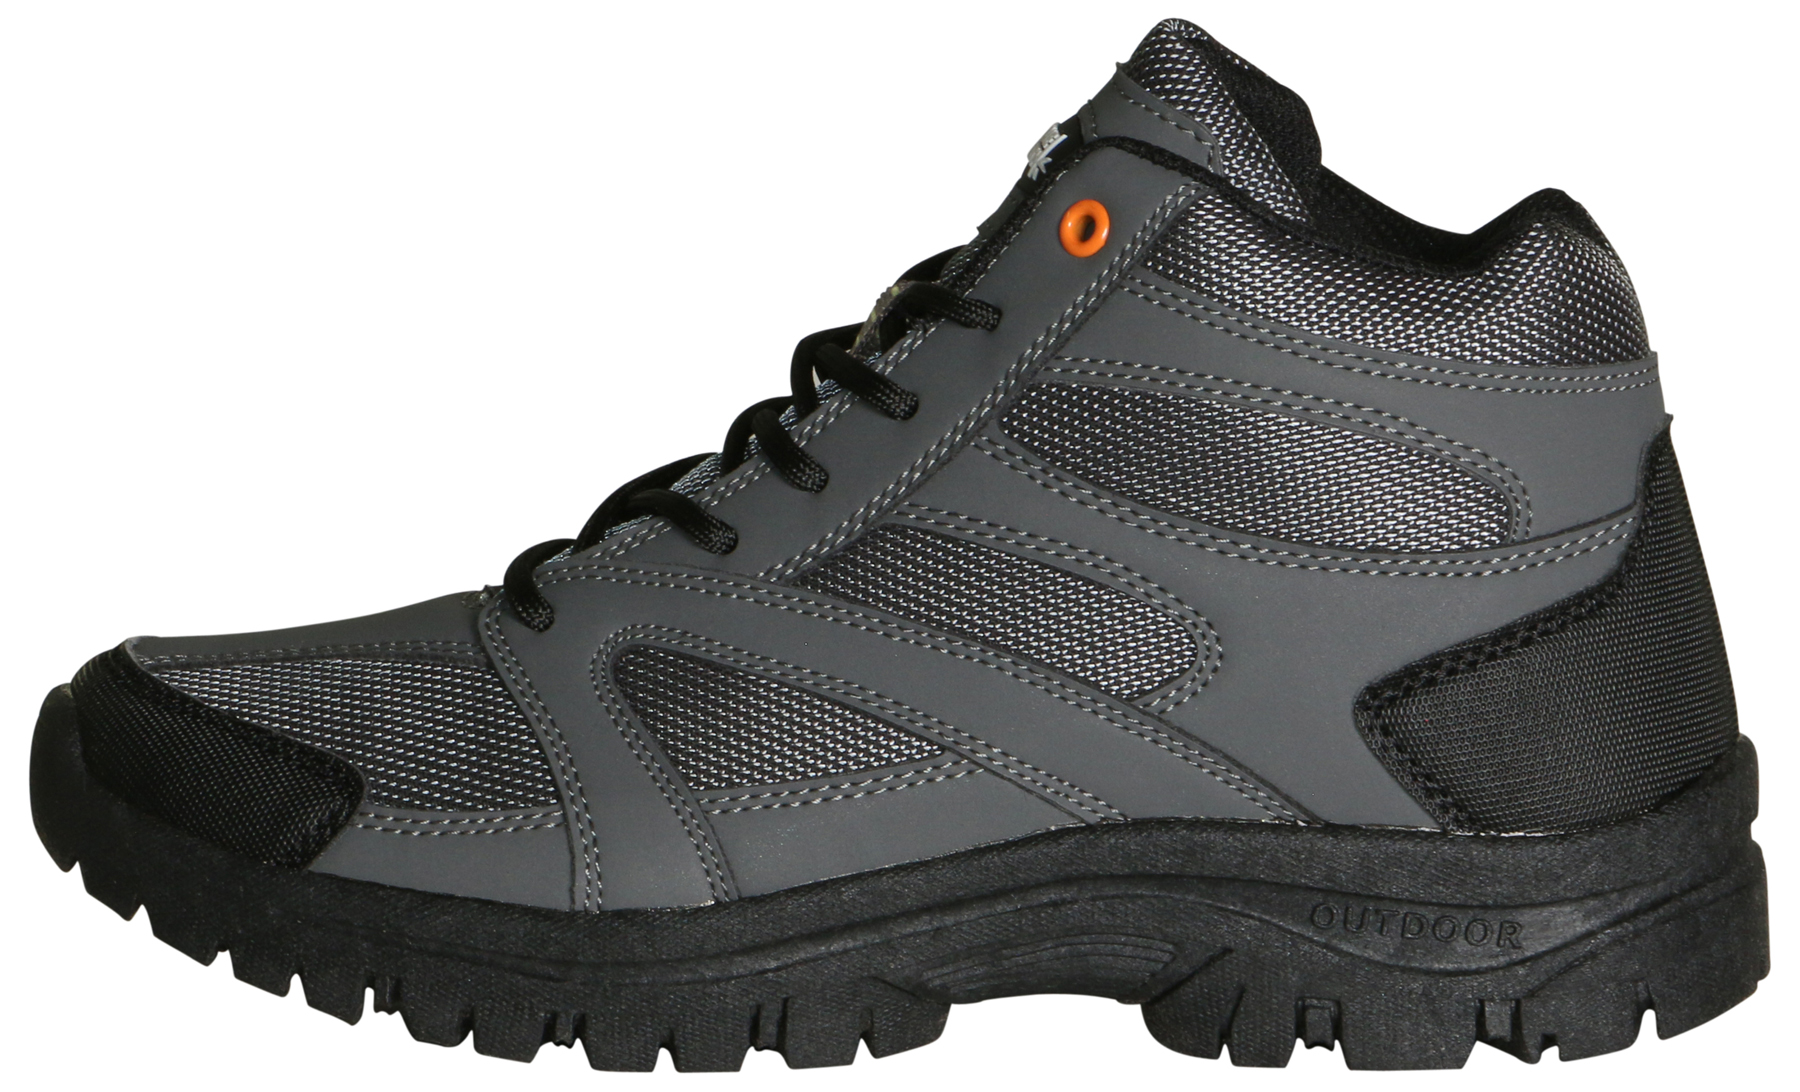 True North Taos Mid Mens Boots Gray and Black huAMVEo59